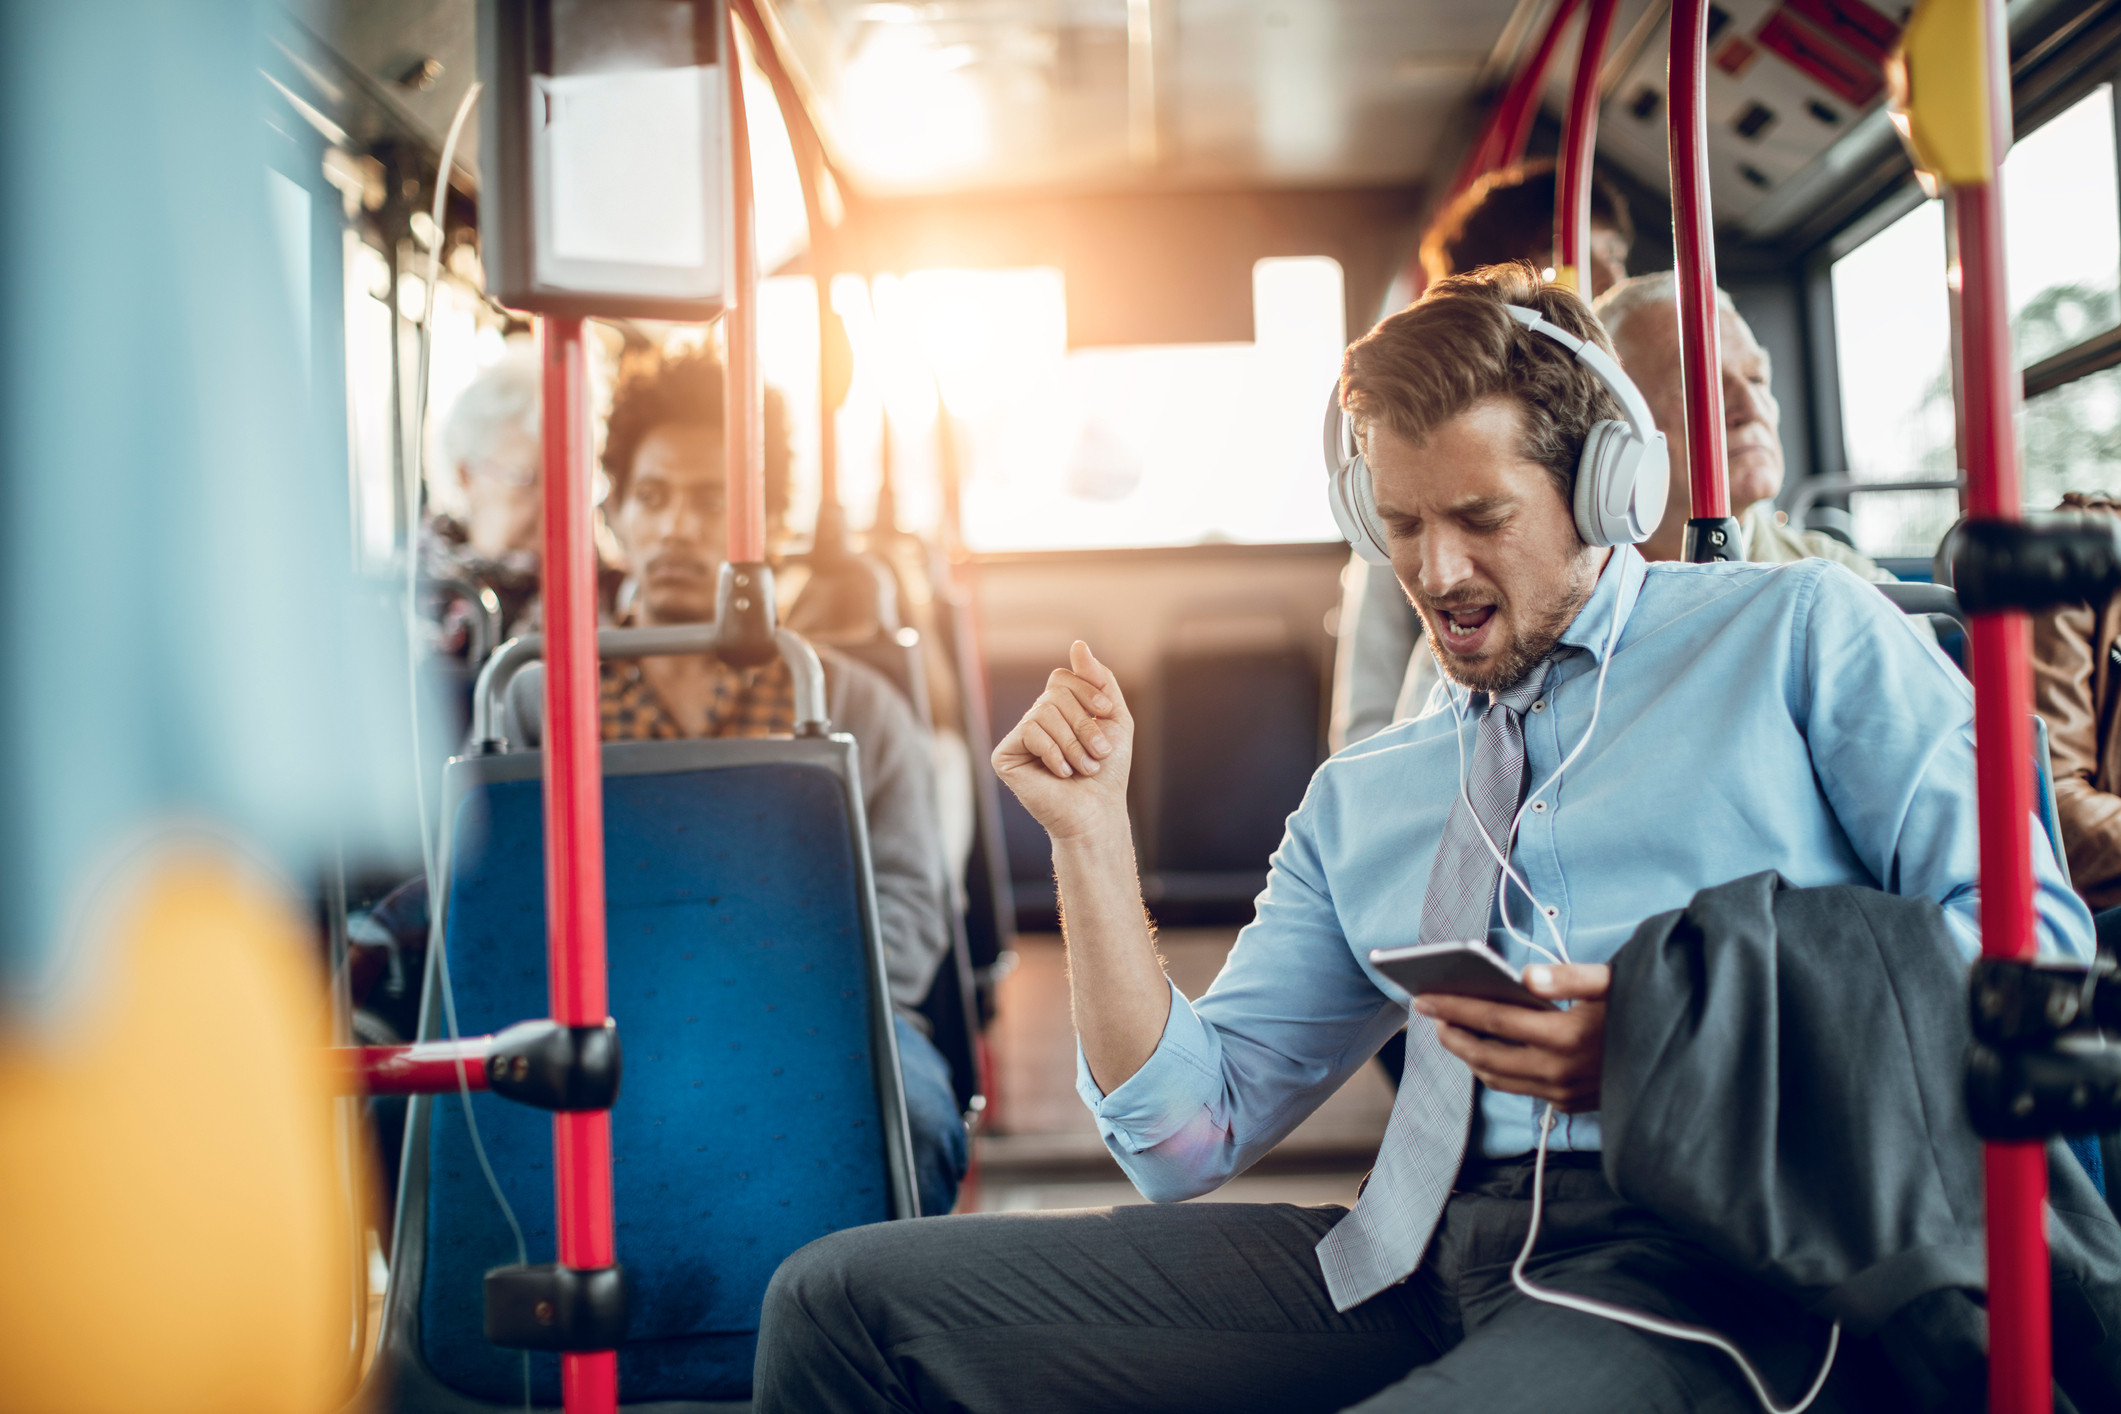 Would you like to know what nearby passenger is listening to on Spotify?